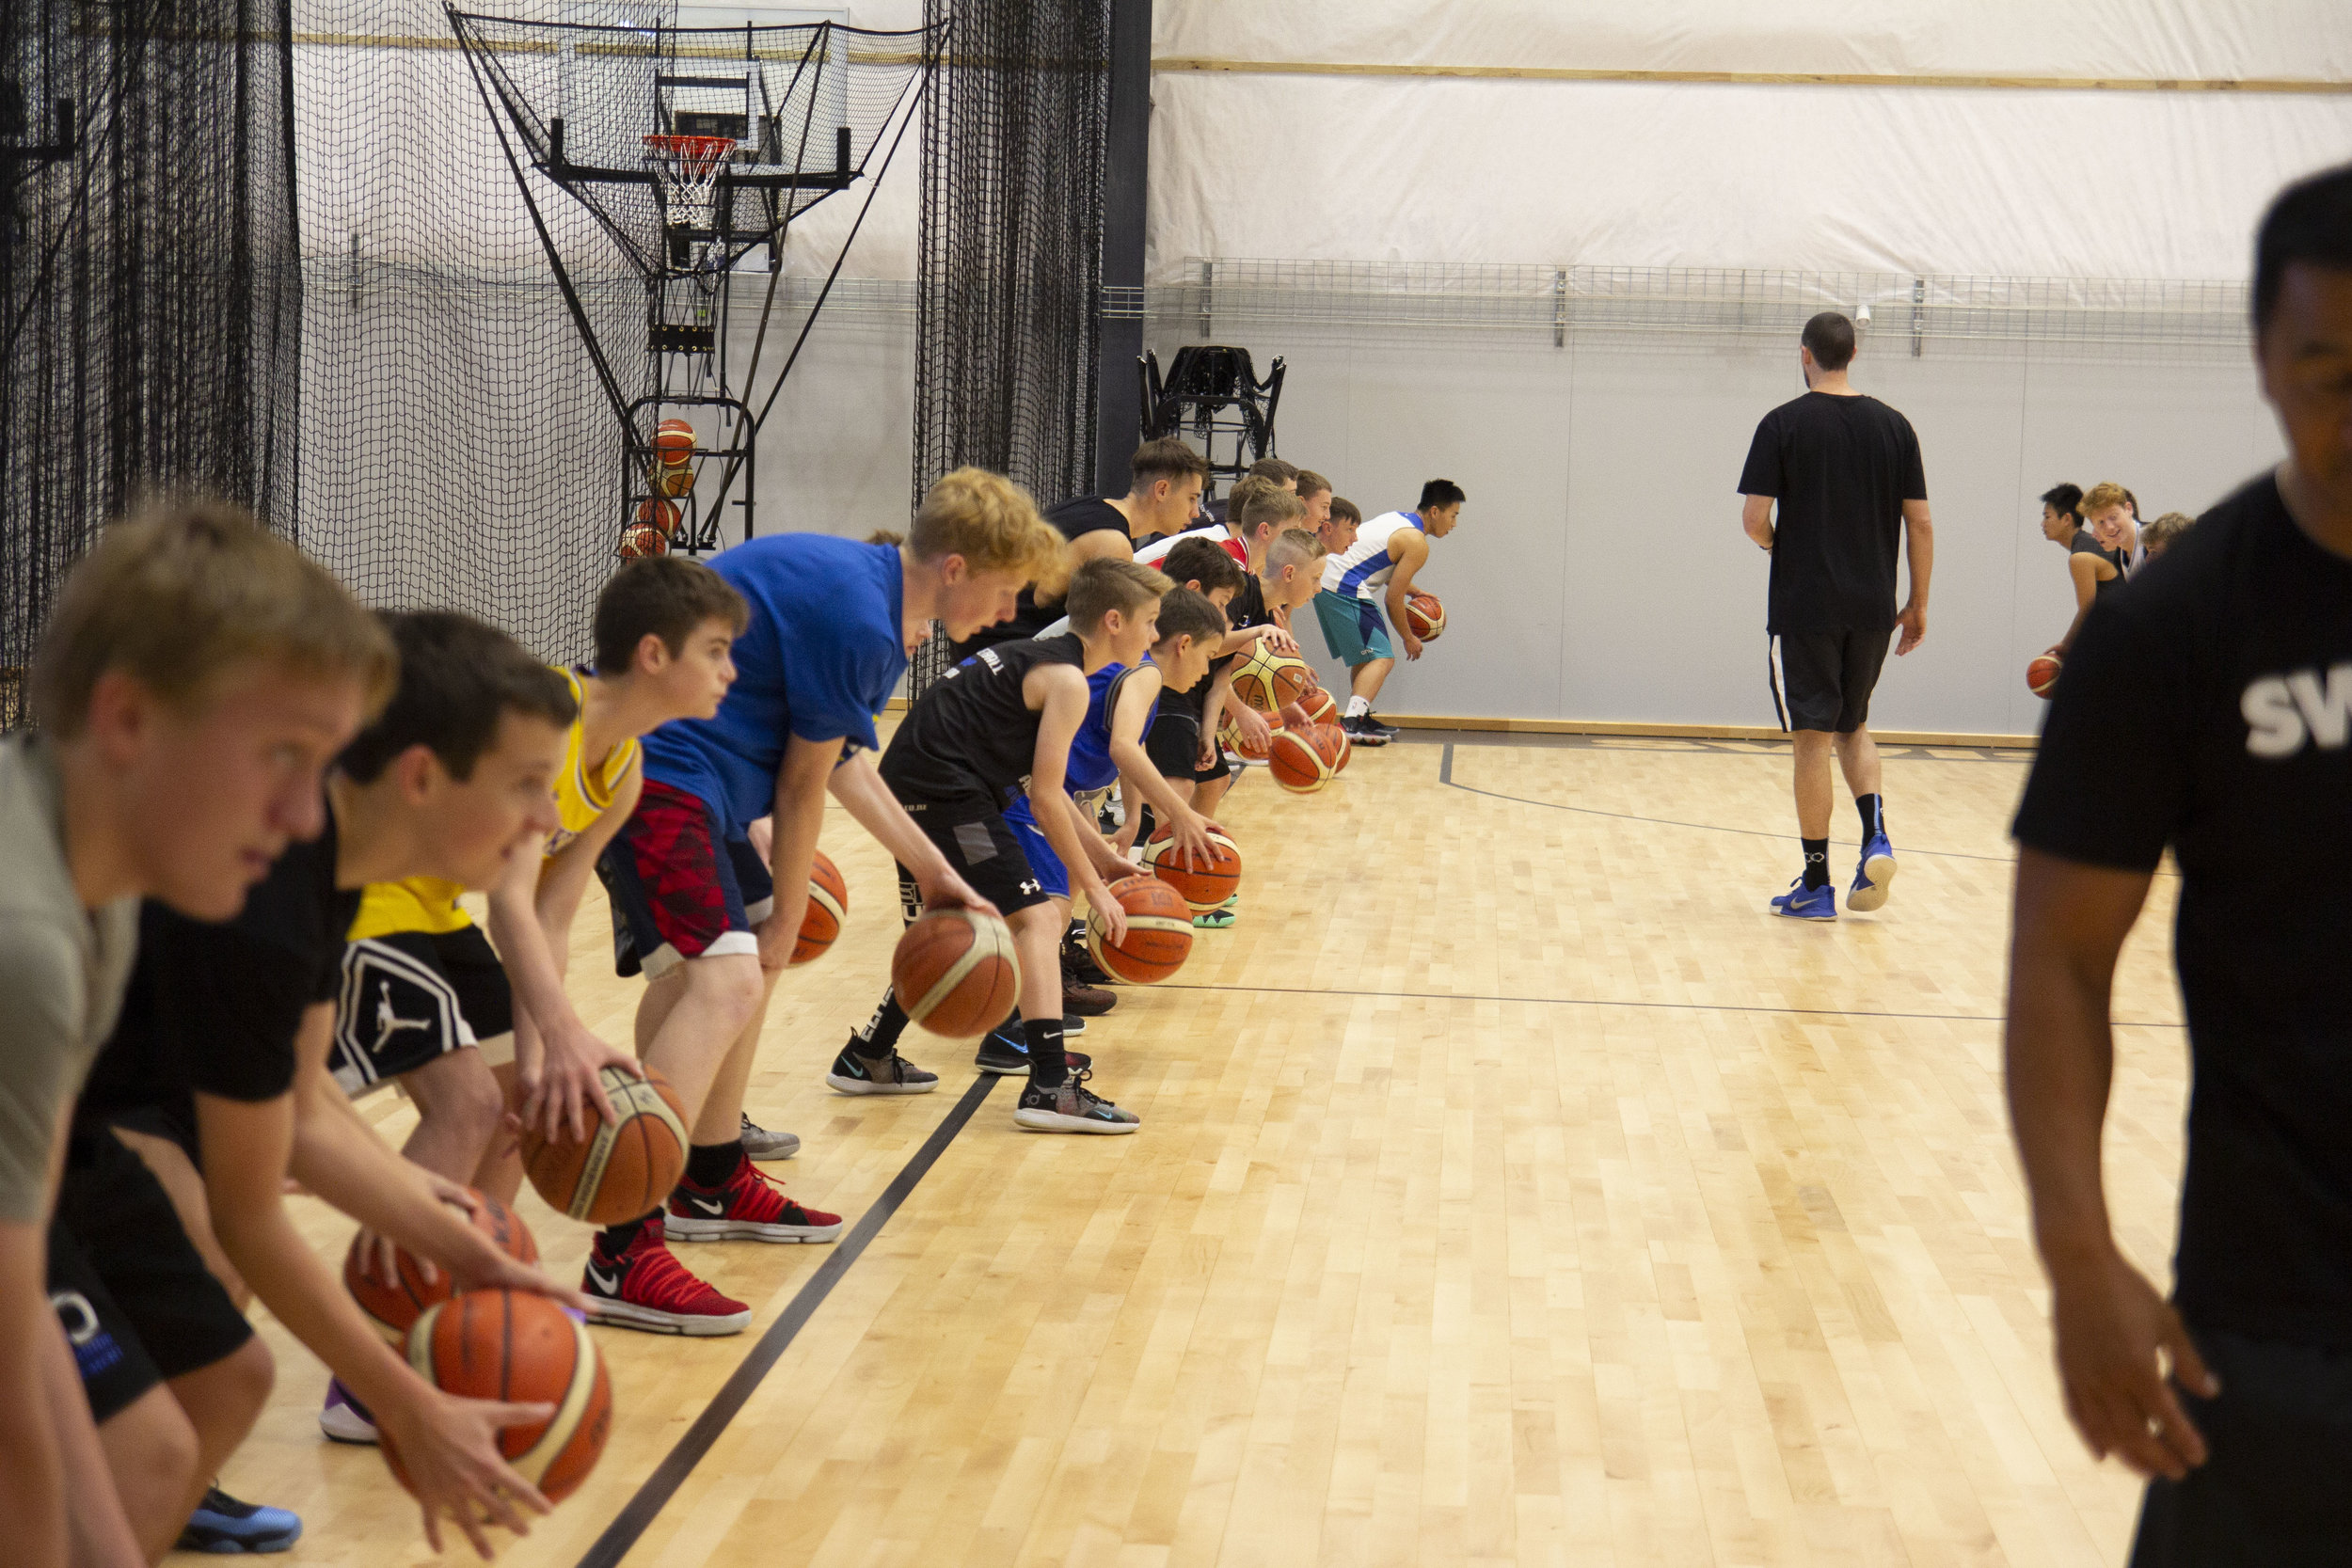 Group Class Schedule - Try one of our Group Classes - JUNIOR SHOOT, JUNIOR HANDLES and junior 3x3 to improve your skills and have fun while doing it. 4pm Mon-Thursday and Saturday 9am and 1pm.